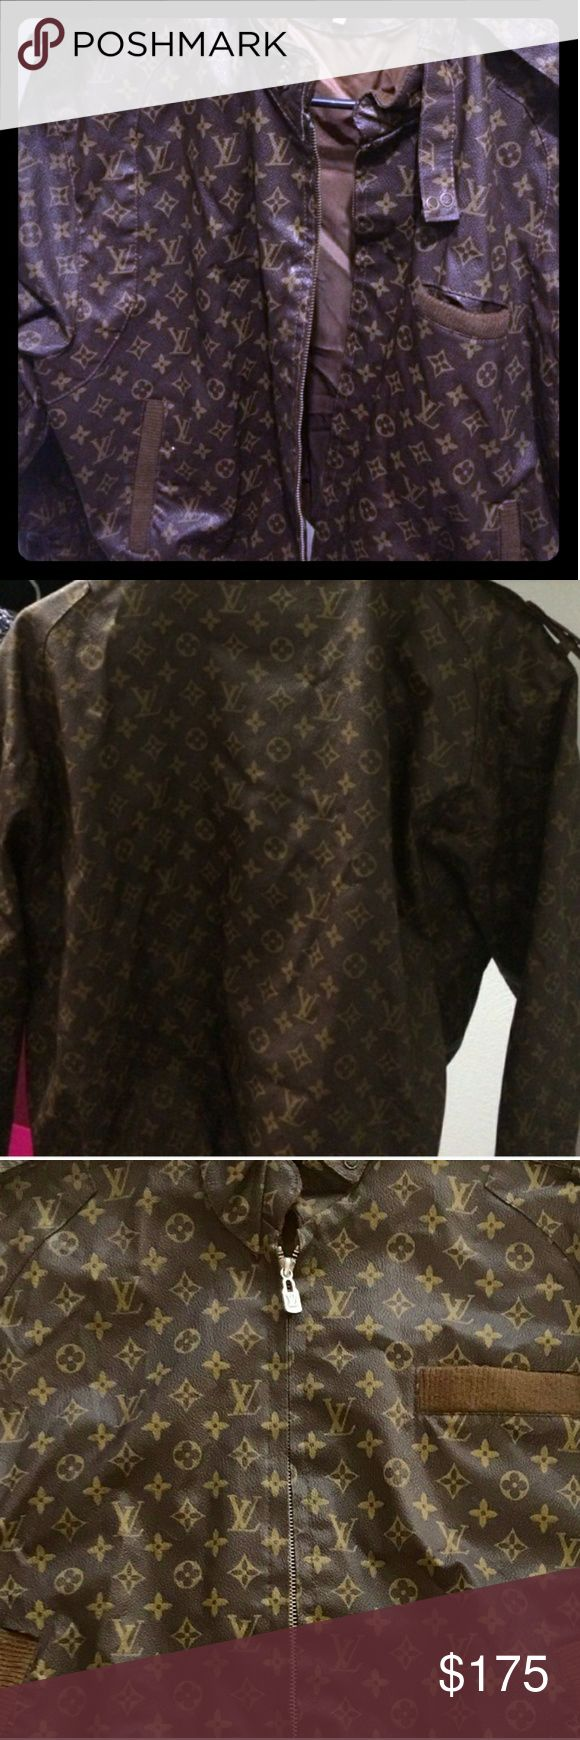 Louis Vuitton Jacket/Bomber 80s Louis Vuitton Leather Bomber: VERY RARE PIECE OF HISTORY Dapper Dan Bomber made by hand in the 80s. Great Condition! Only one small tear on Callar  Size: Medium Louis Vuitton Jackets & Coats